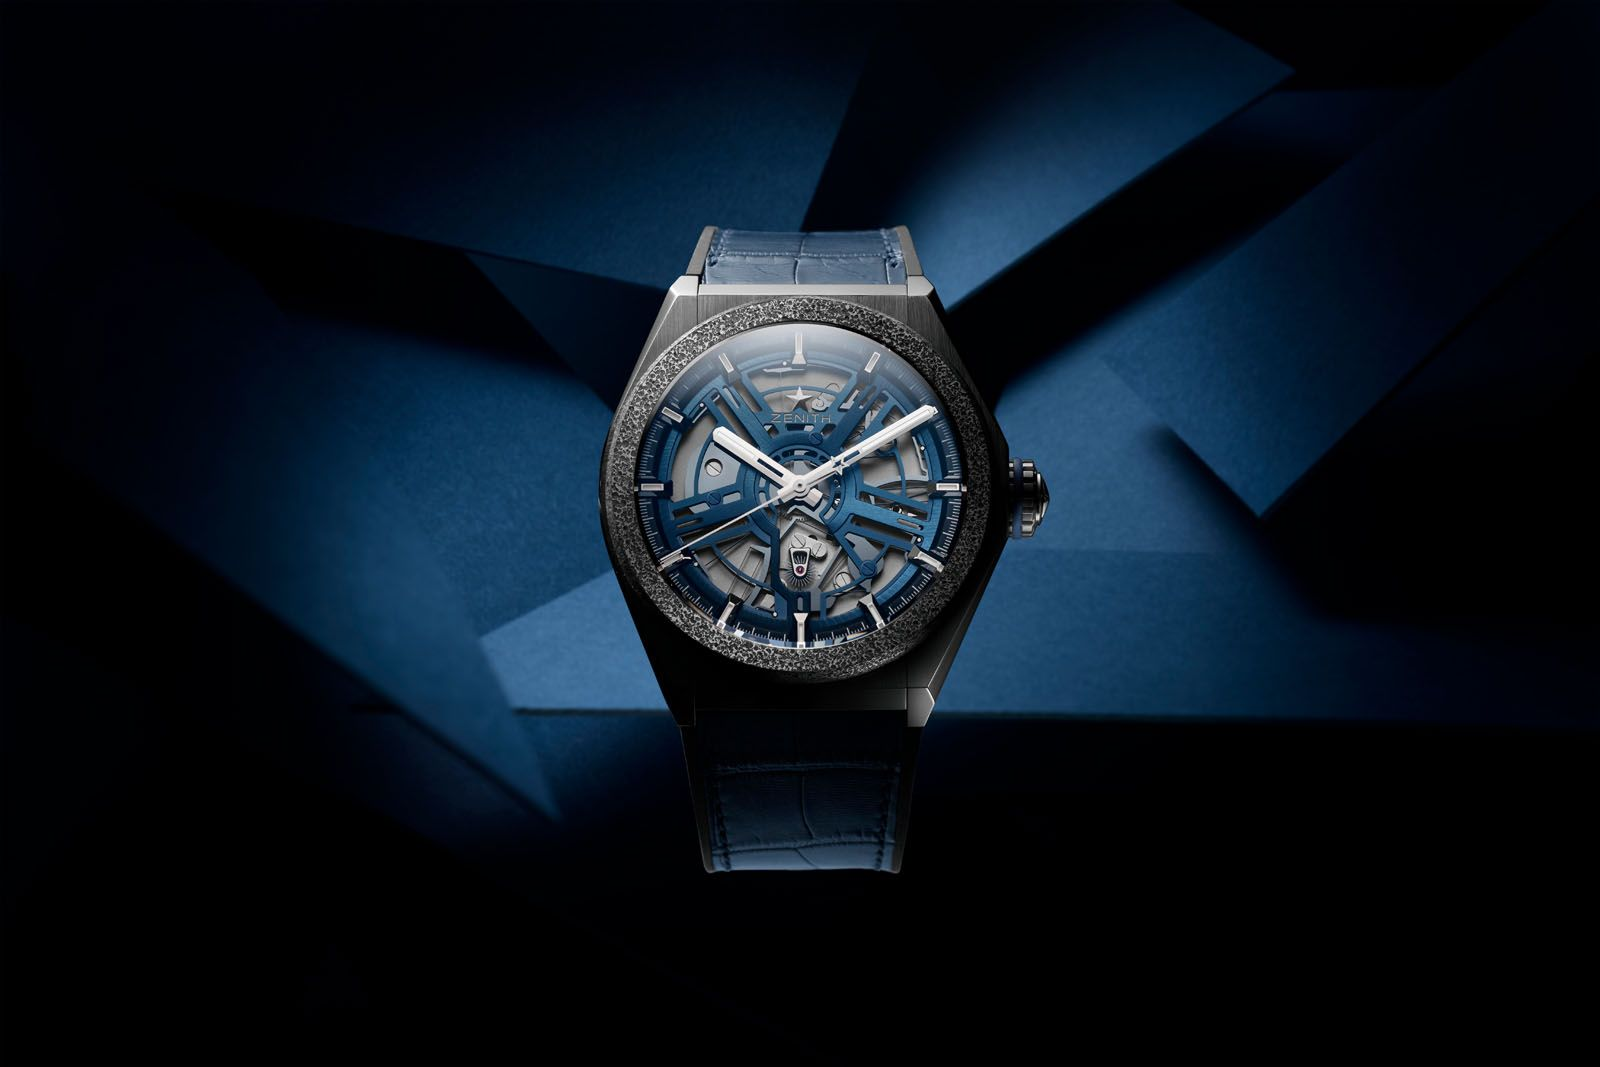 The Defy Inventor uses Aeronith, an extra-light aluminium composite reportedly developed by Zenith's sister brand, Hublot, for its bezel, while the rest of its case is crafted out of titanium